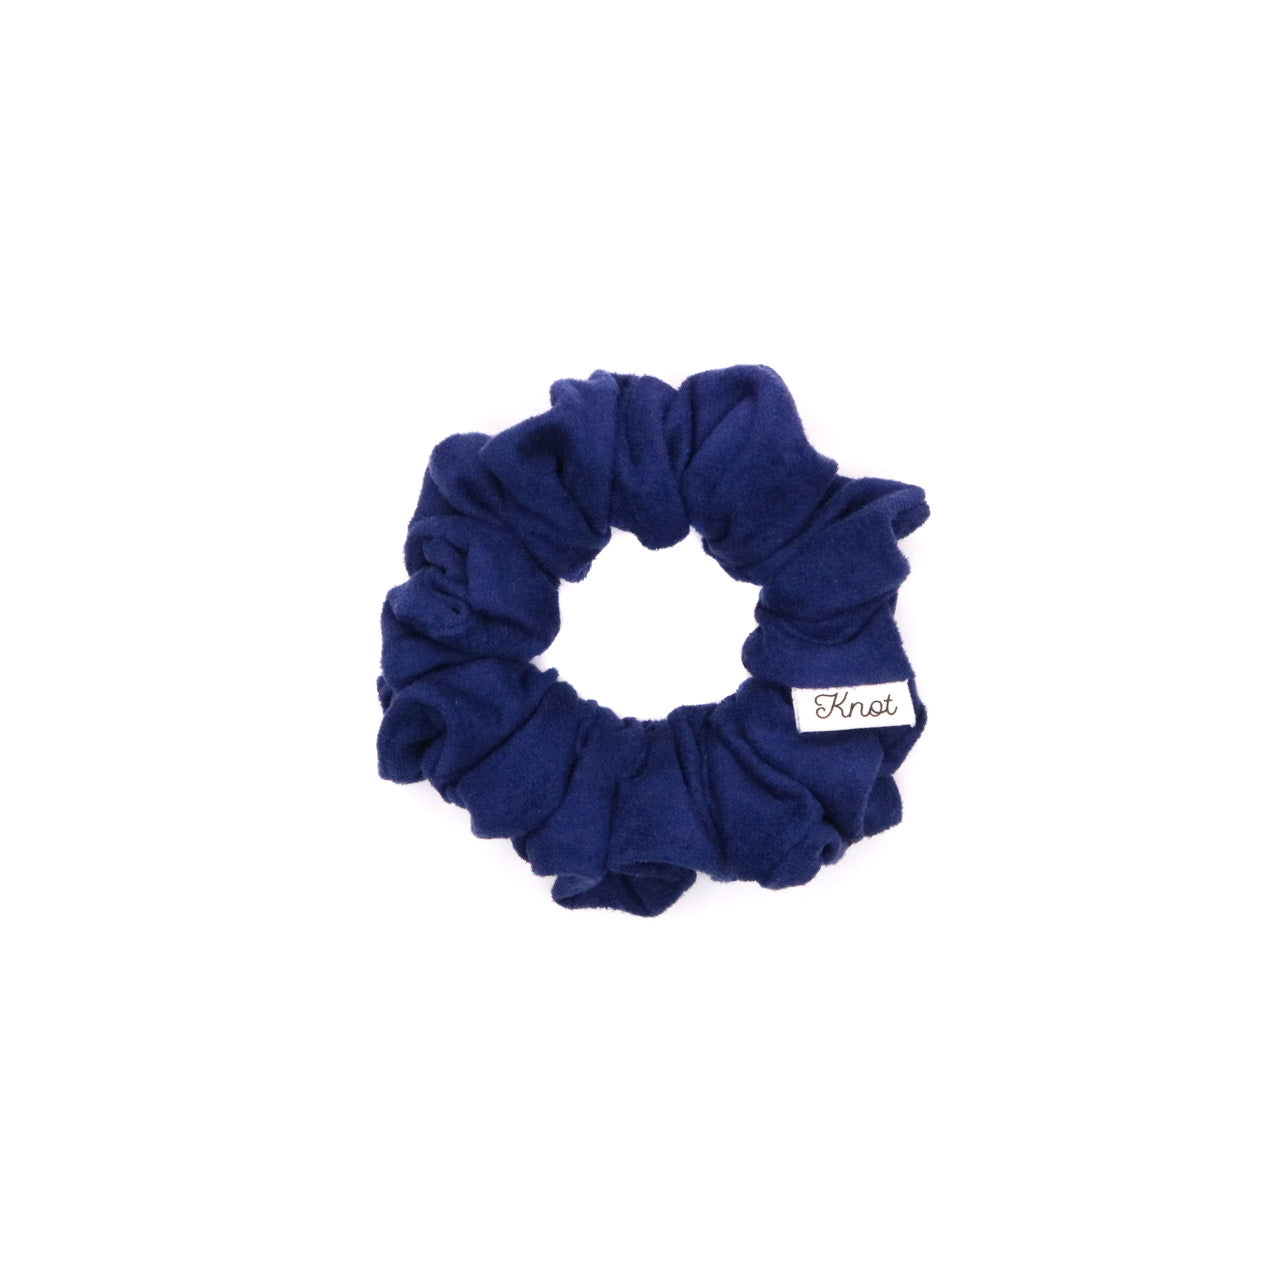 The Knot Shop Hair Scrunchie Blue Suede